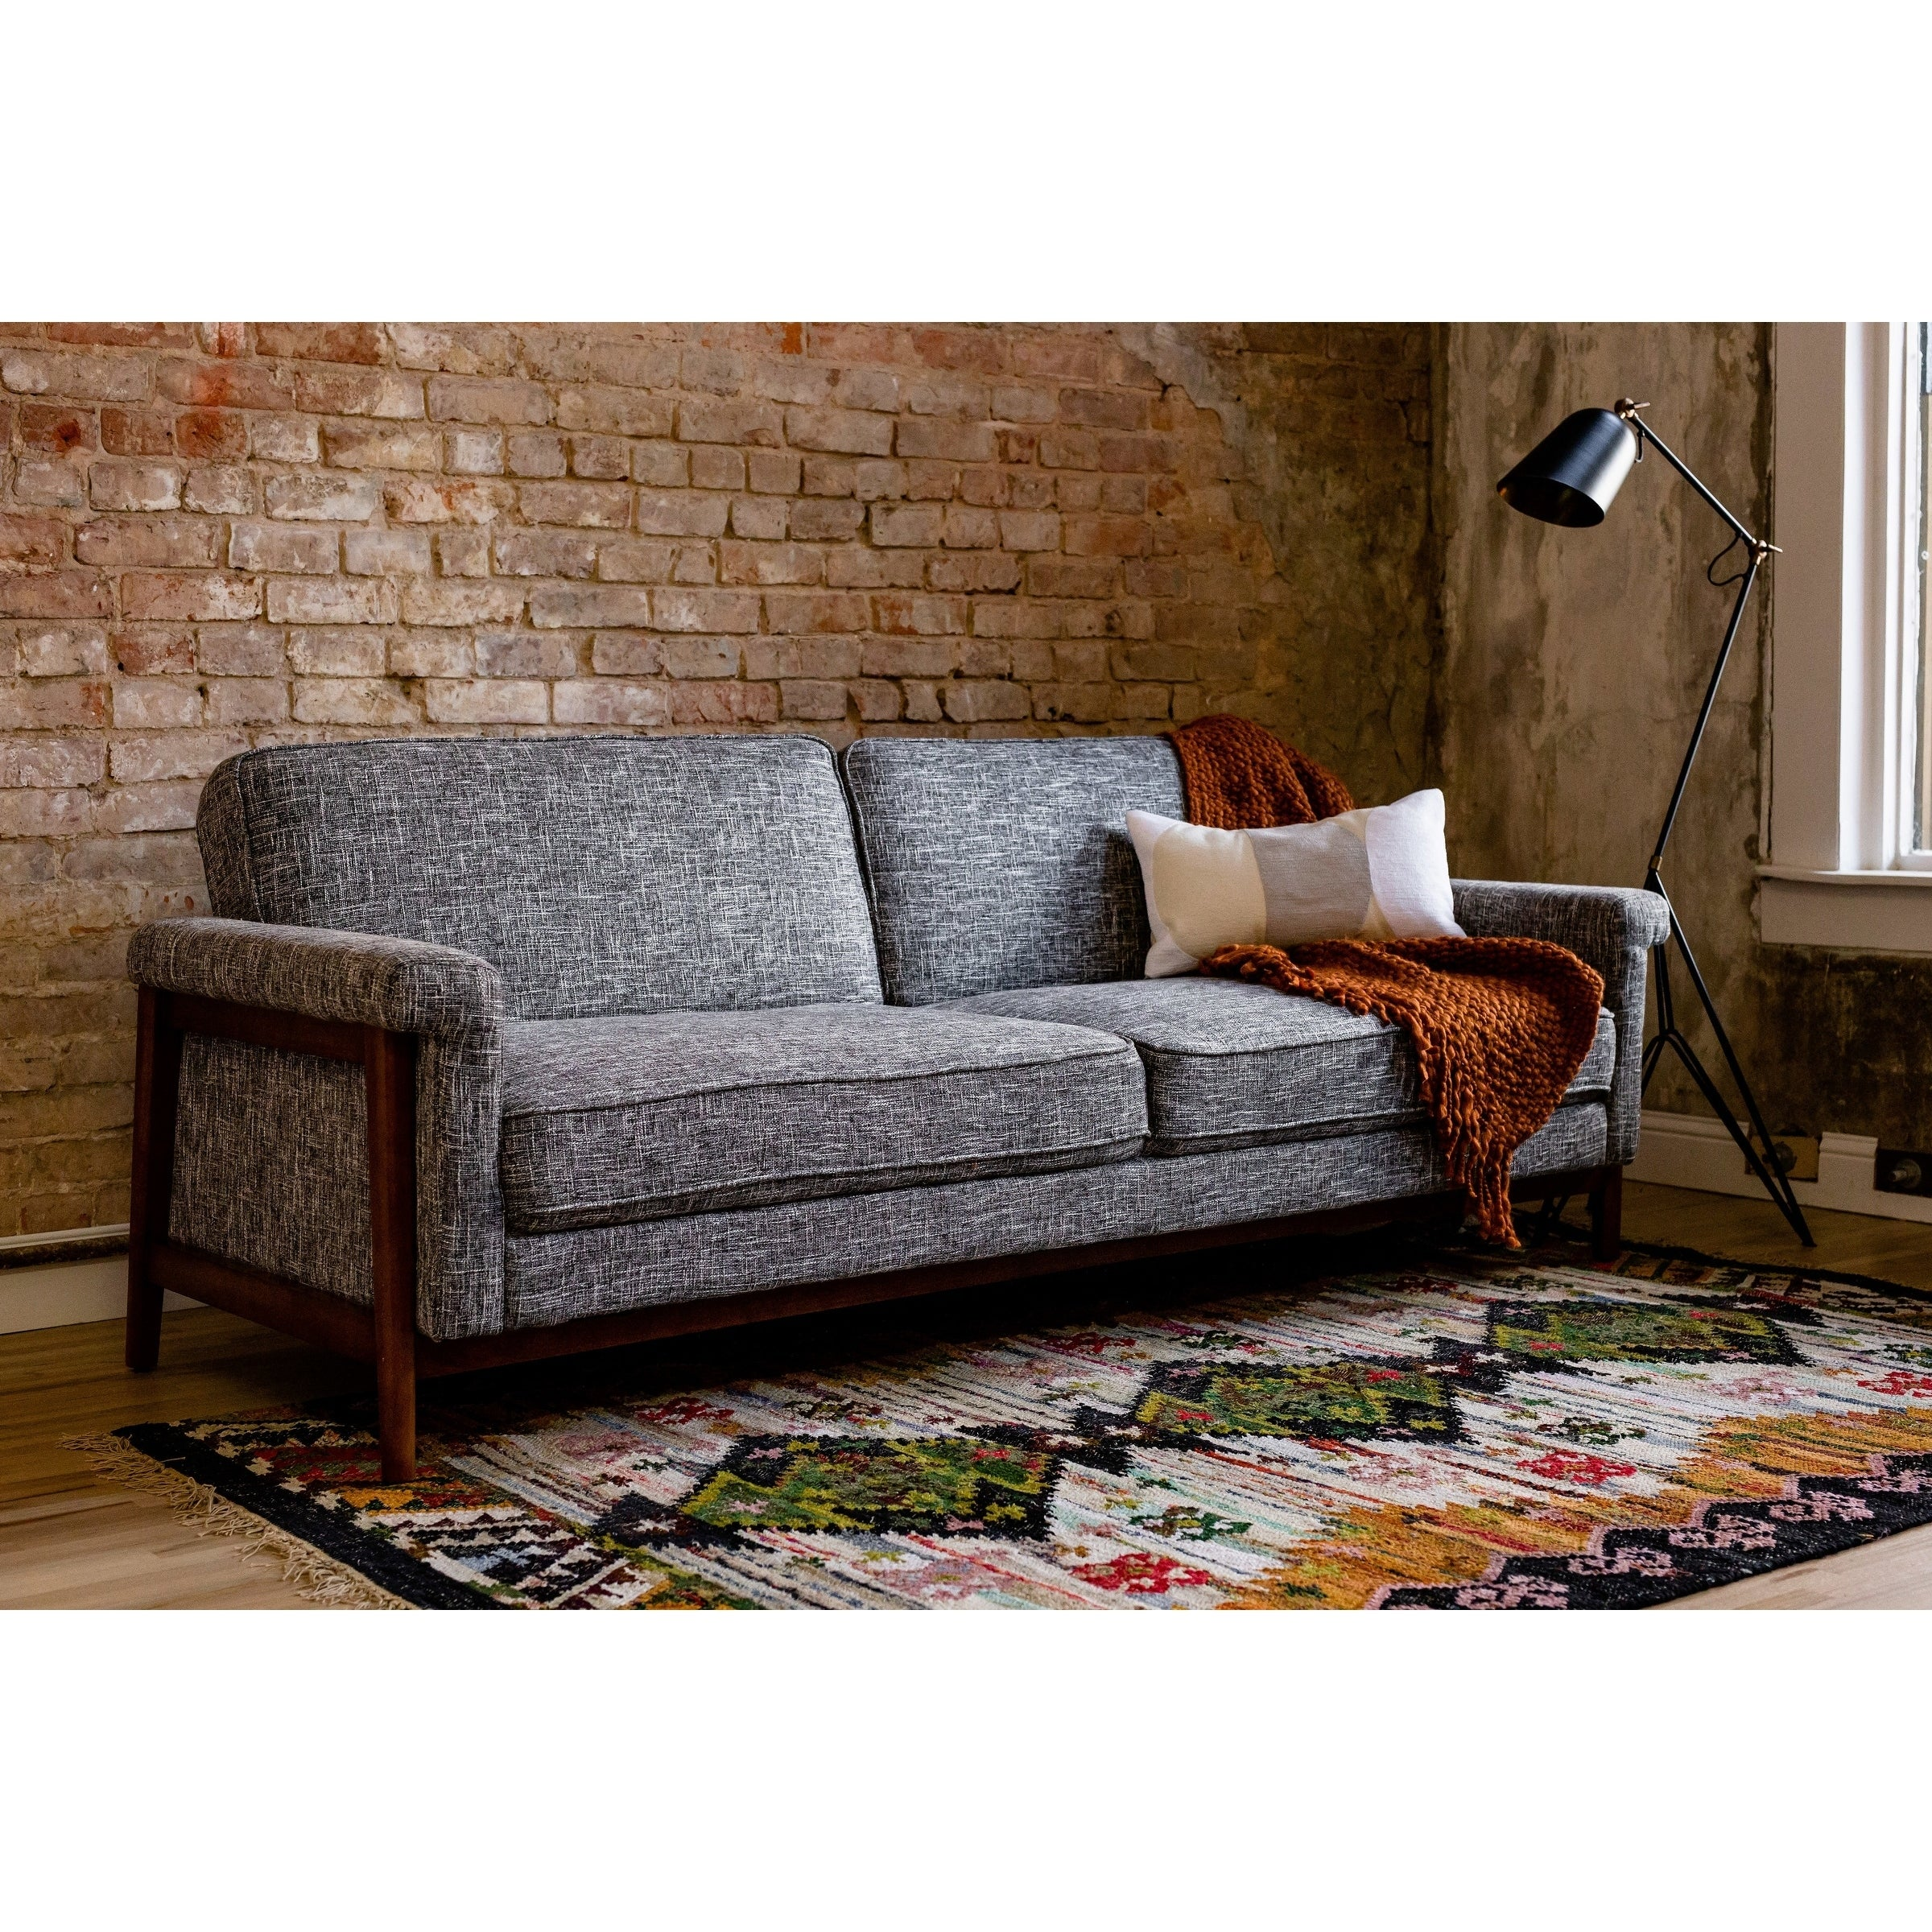 Image of: Shop Black Friday Deals On Ainsley Mid Century Modern Grey Upholstered Sleeper Sofa Overstock 22885737